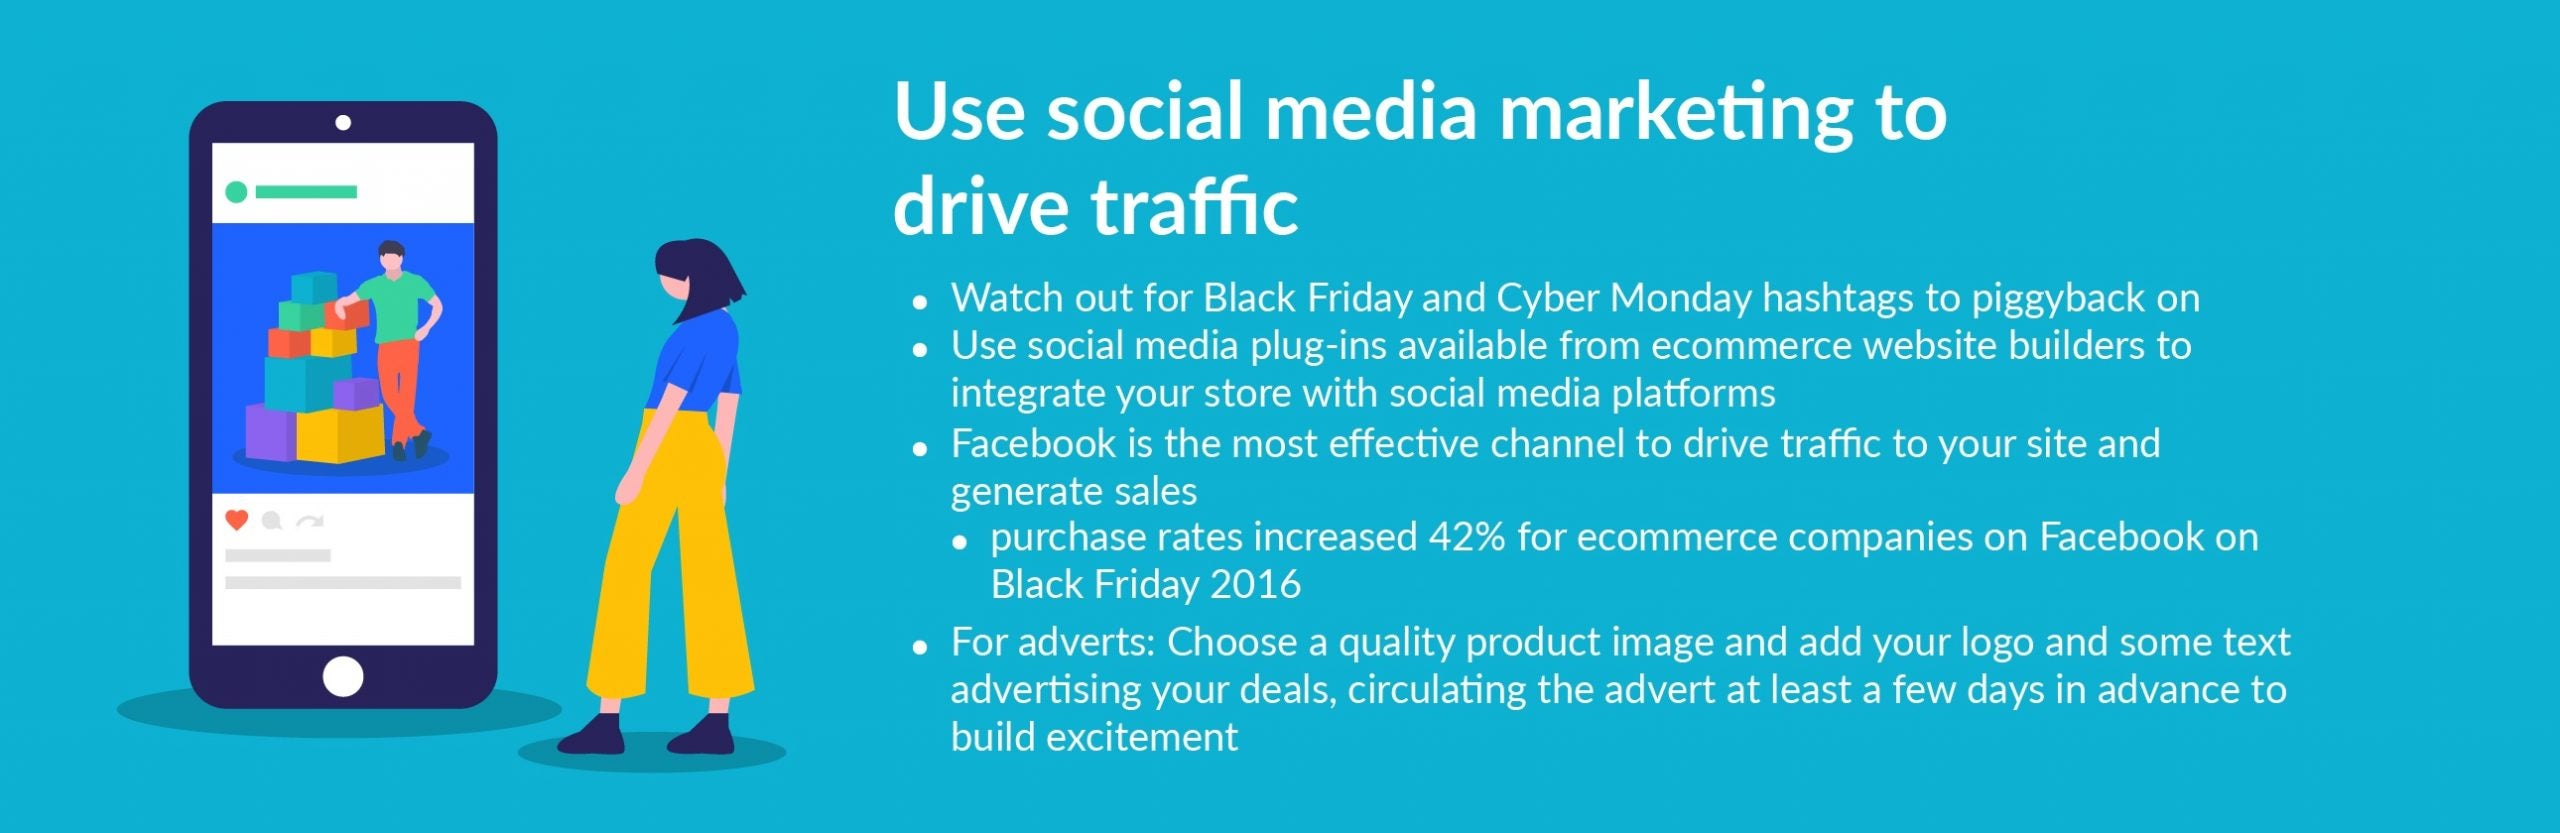 black friday tip use social media